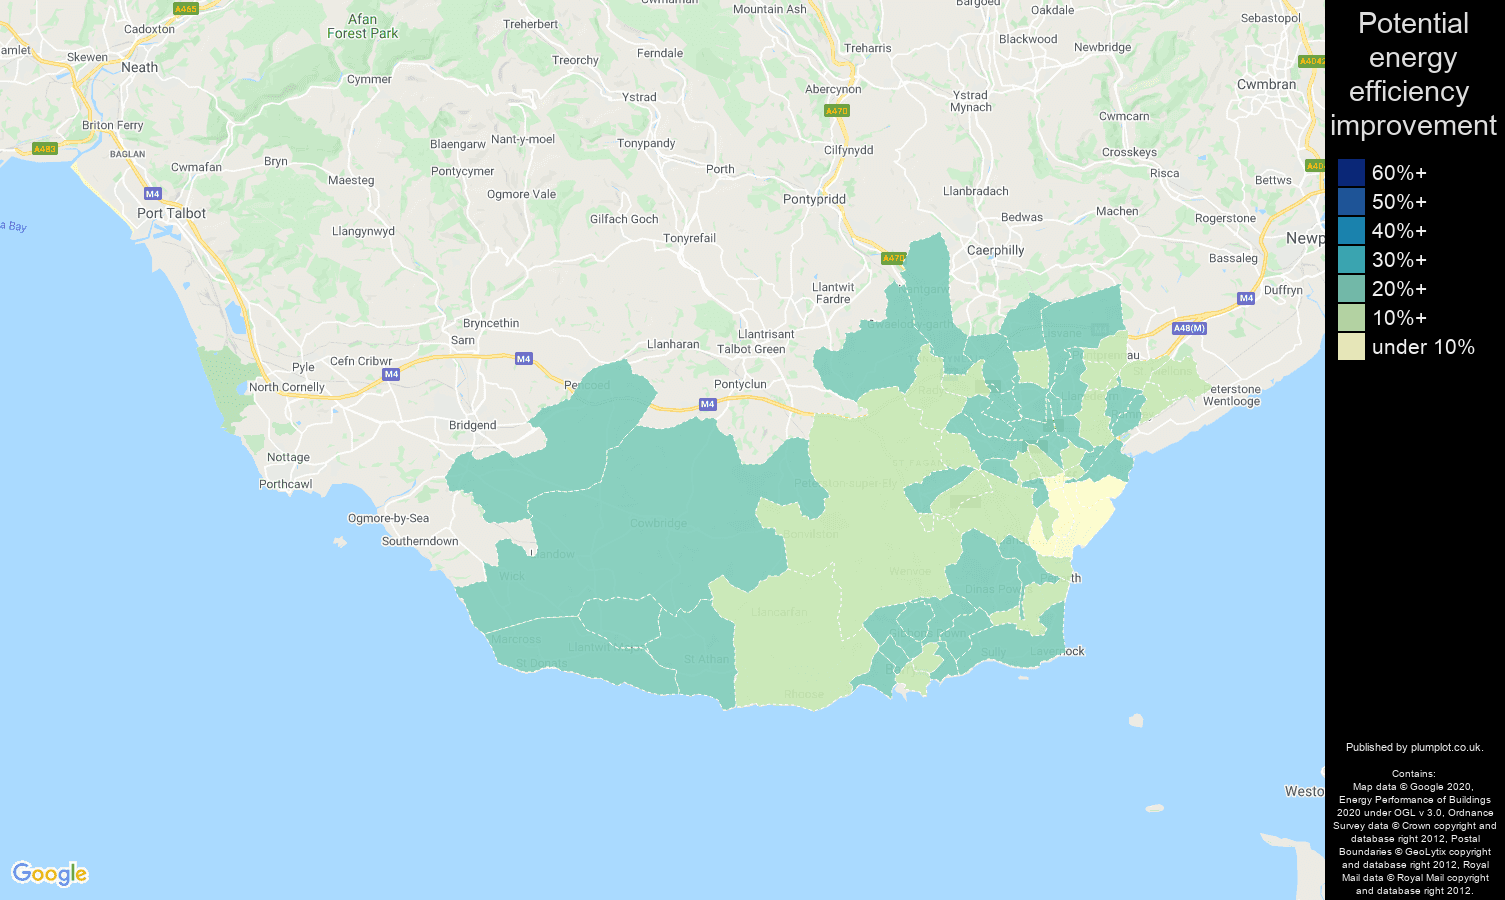 South Glamorgan map of potential energy efficiency improvement of properties